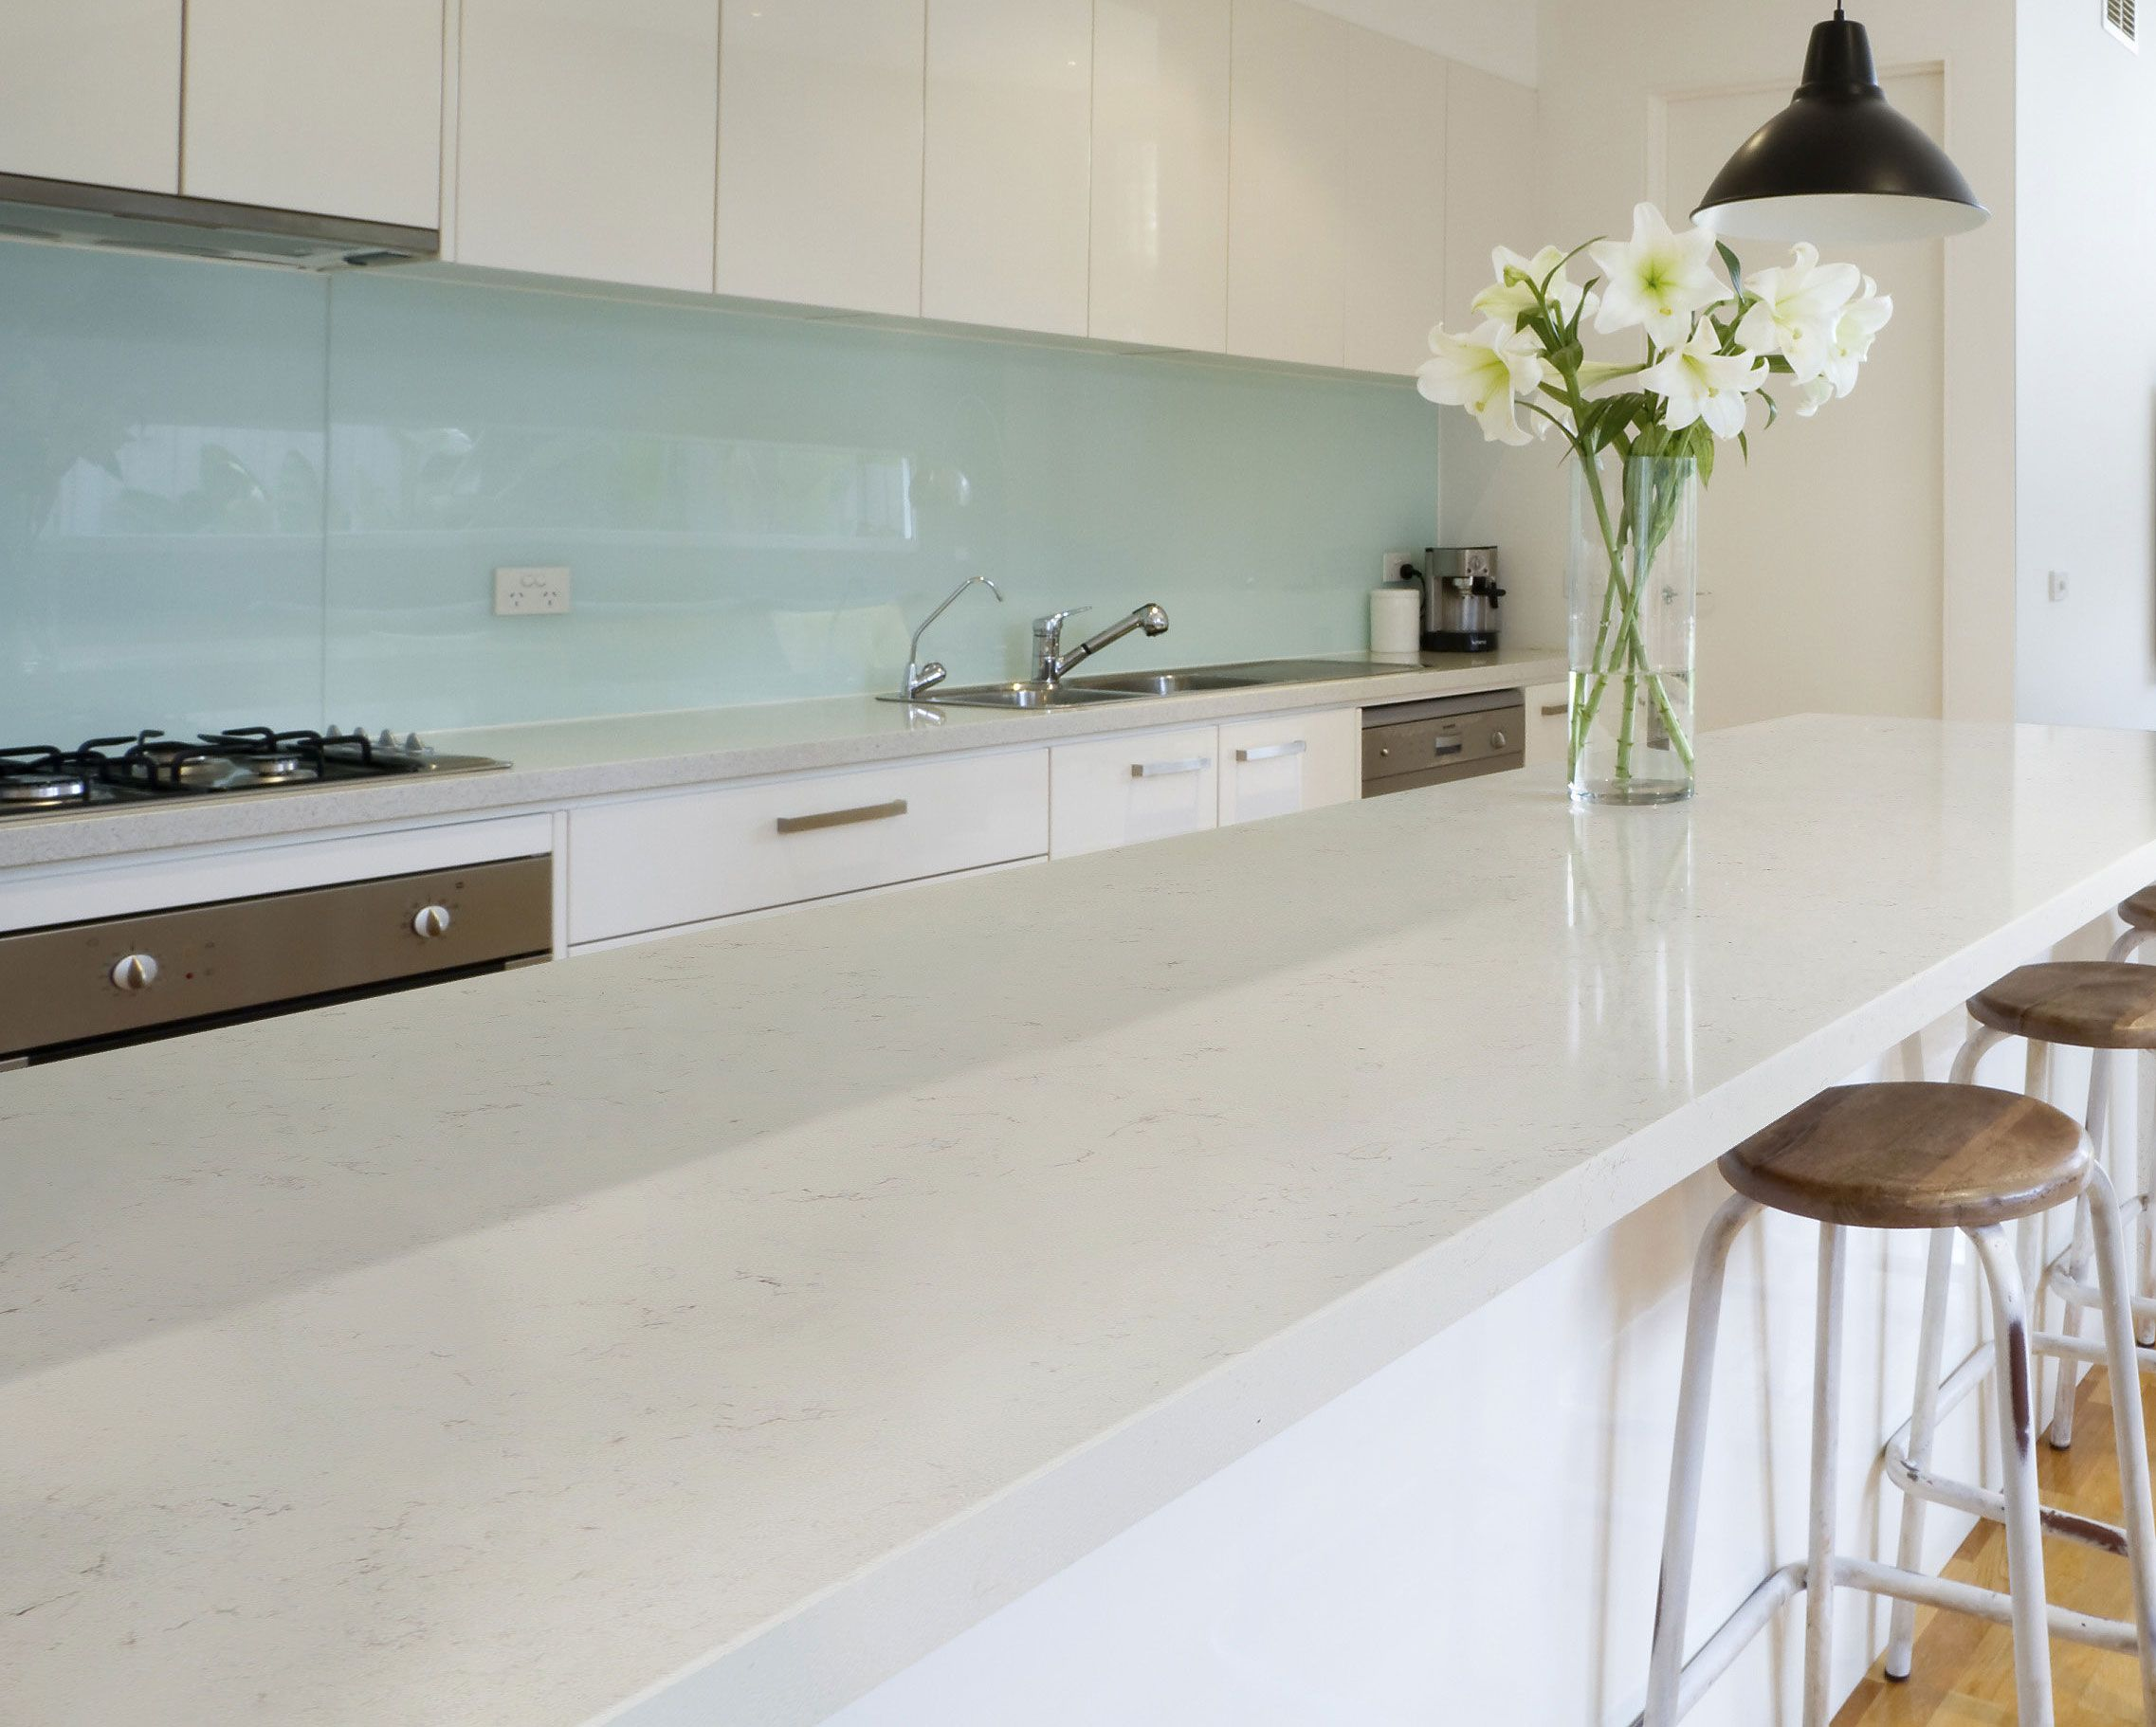 Silestone S Ariel Quartz Is Simple Yet Sophisticated